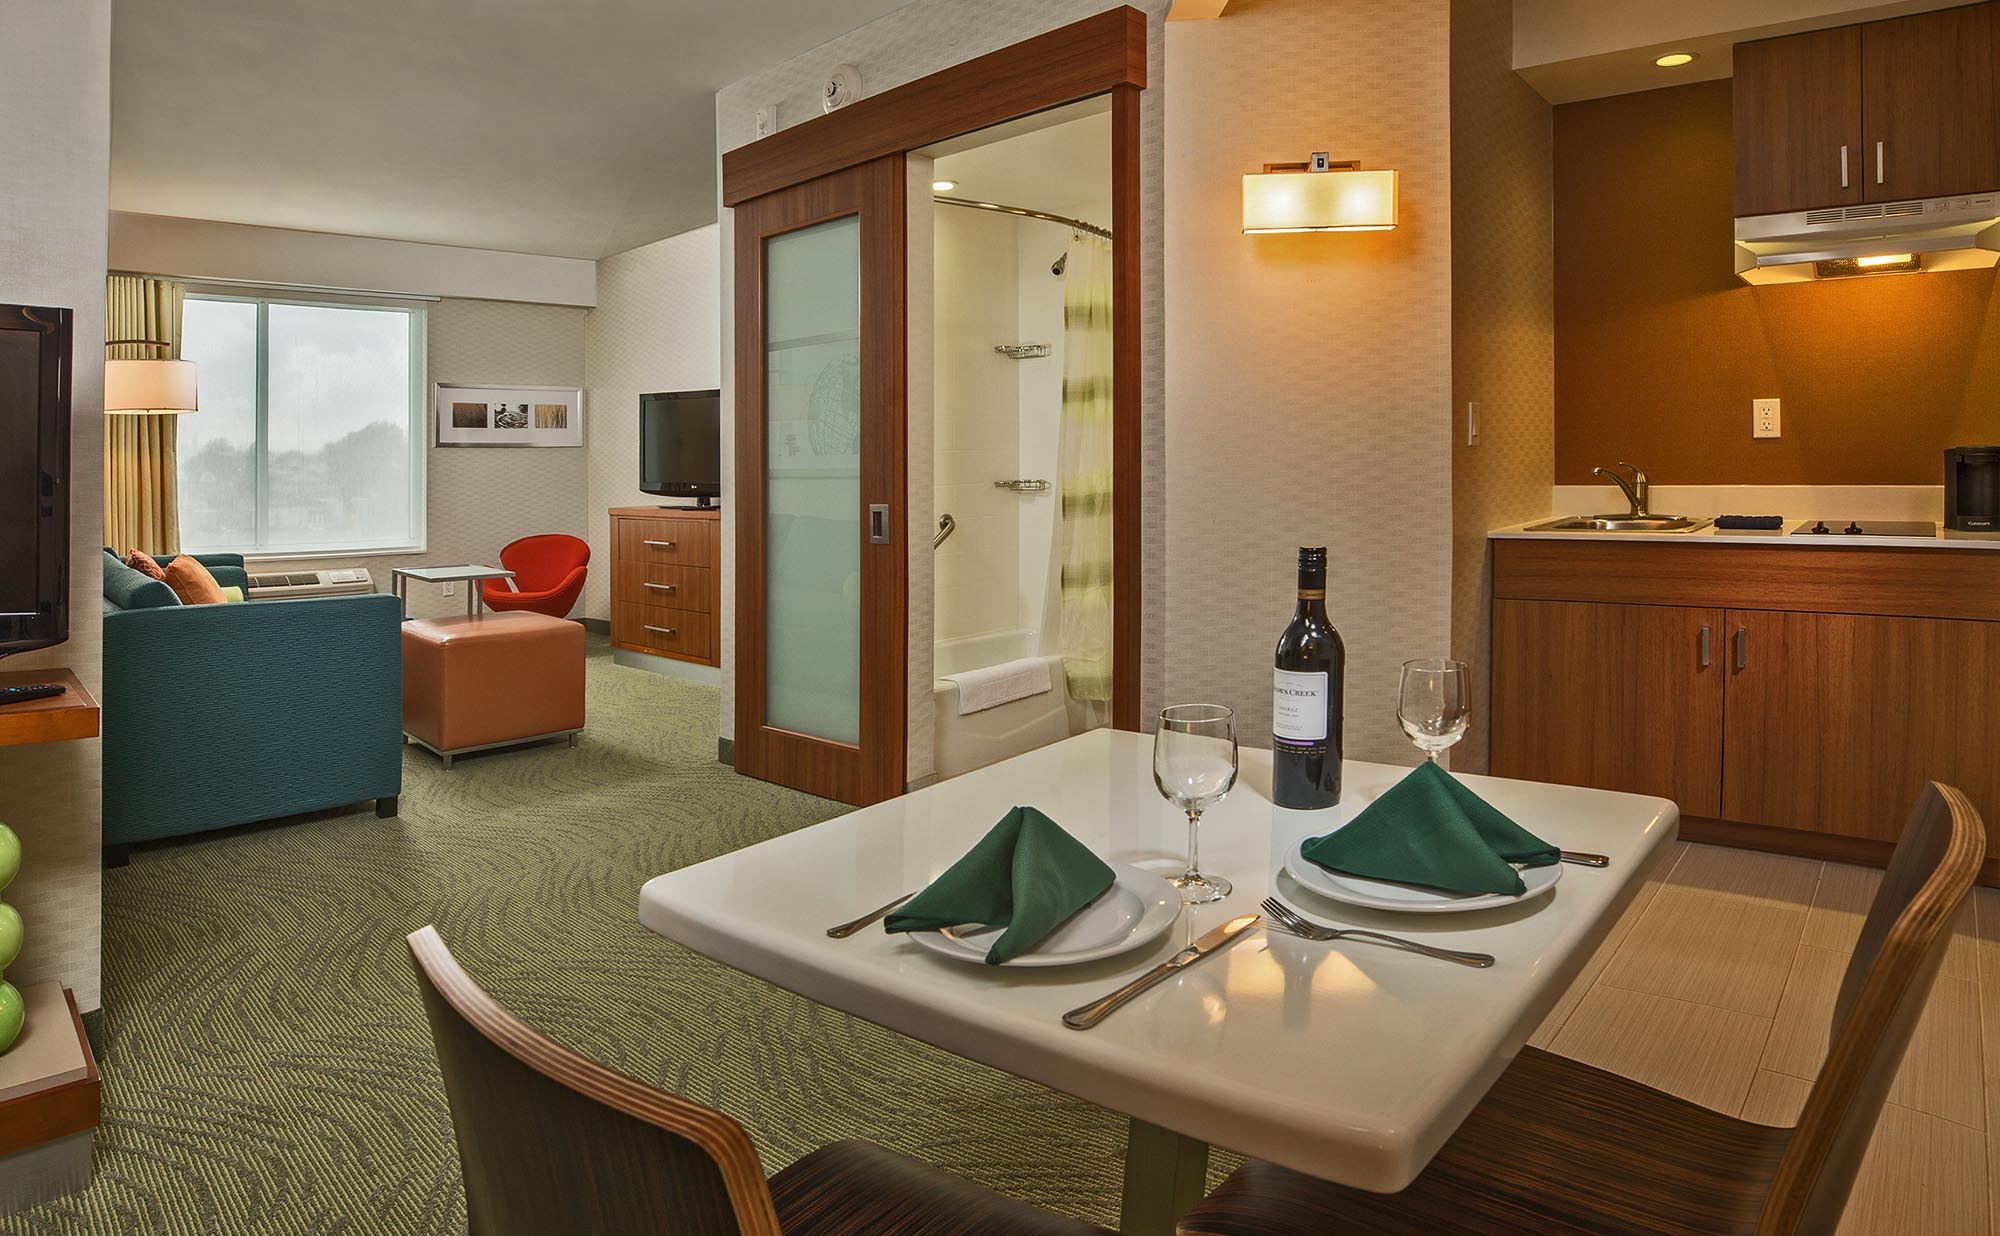 Springhill Suites New York LaGuardia Airport - Urgo Hotels & Resorts